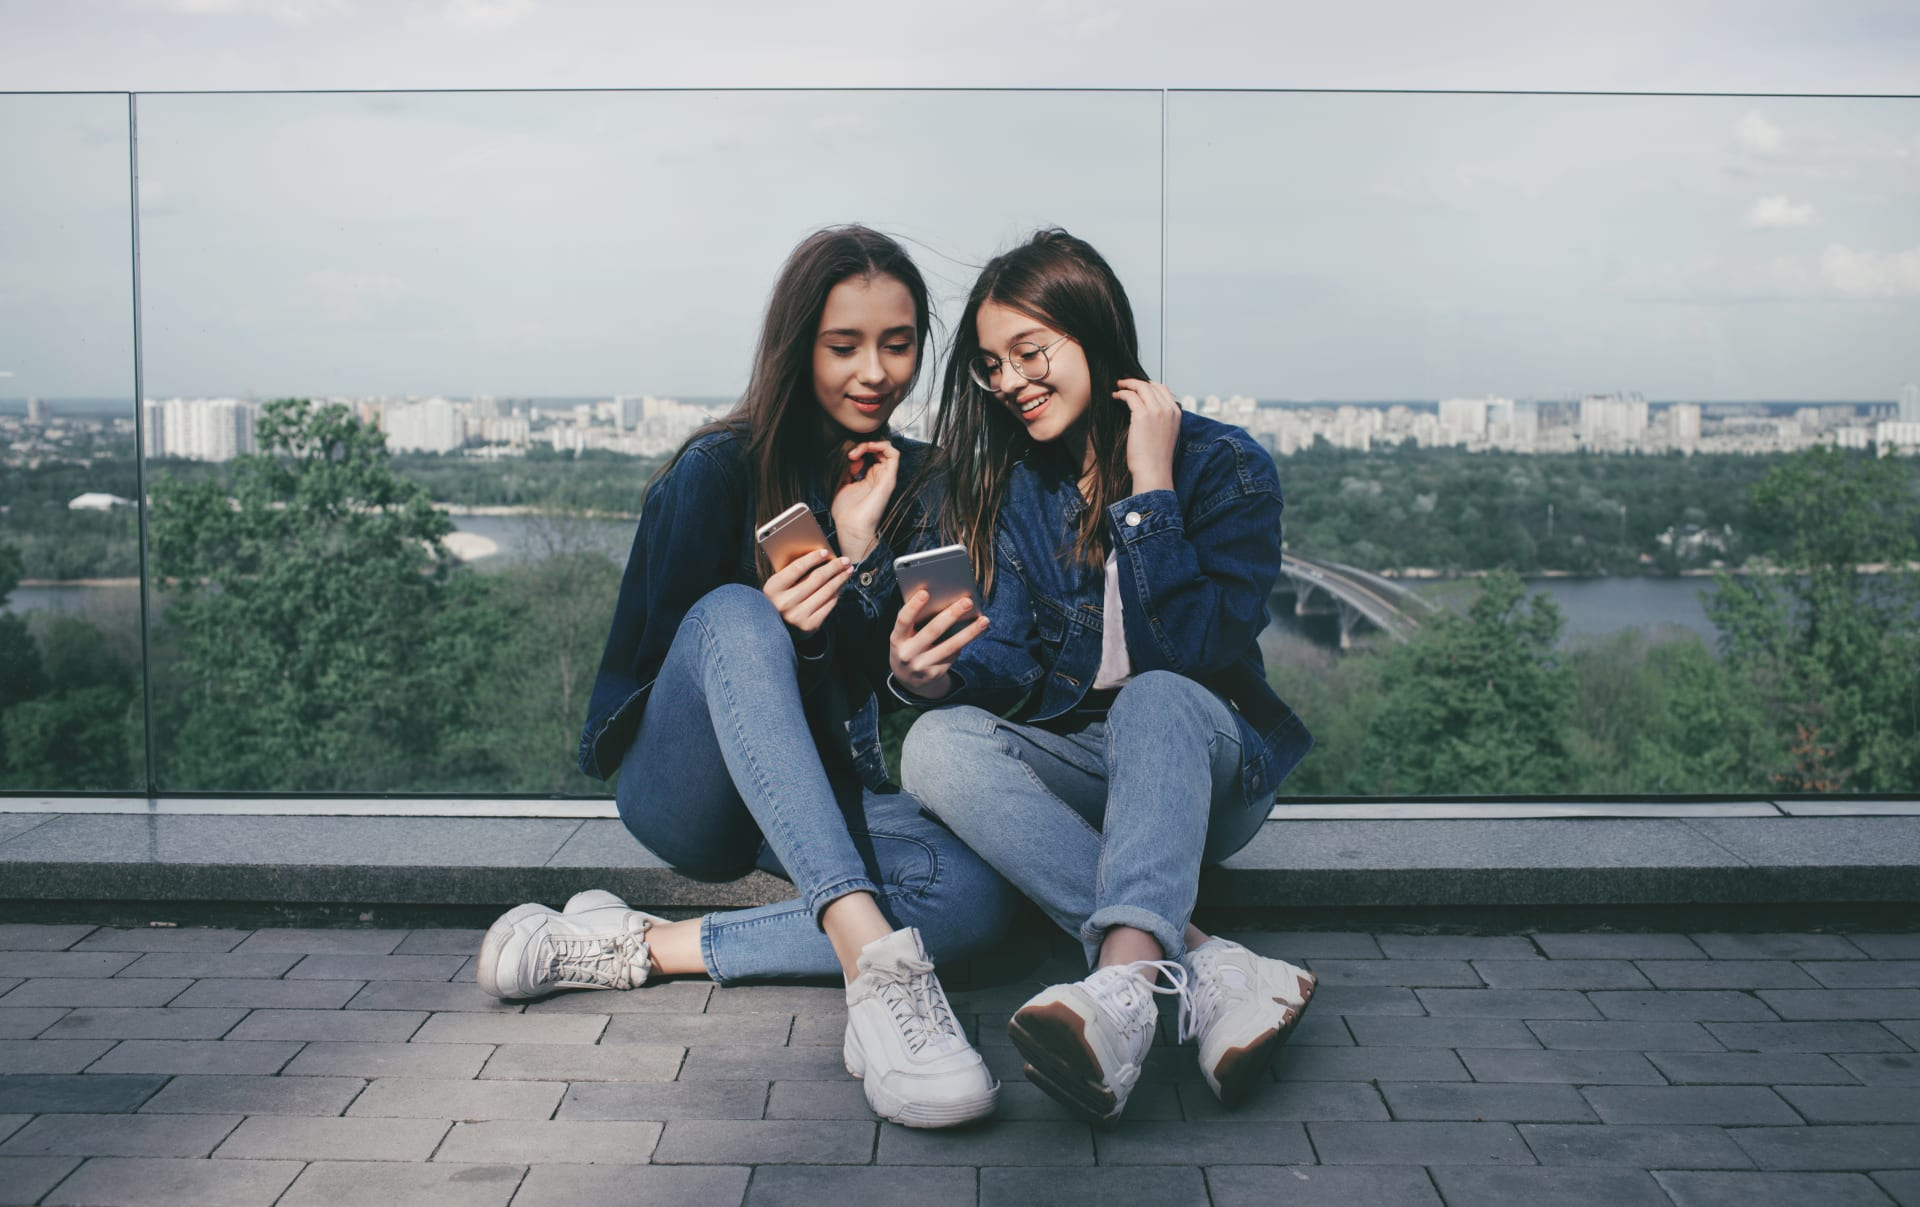 Girls sitting against a glass fence